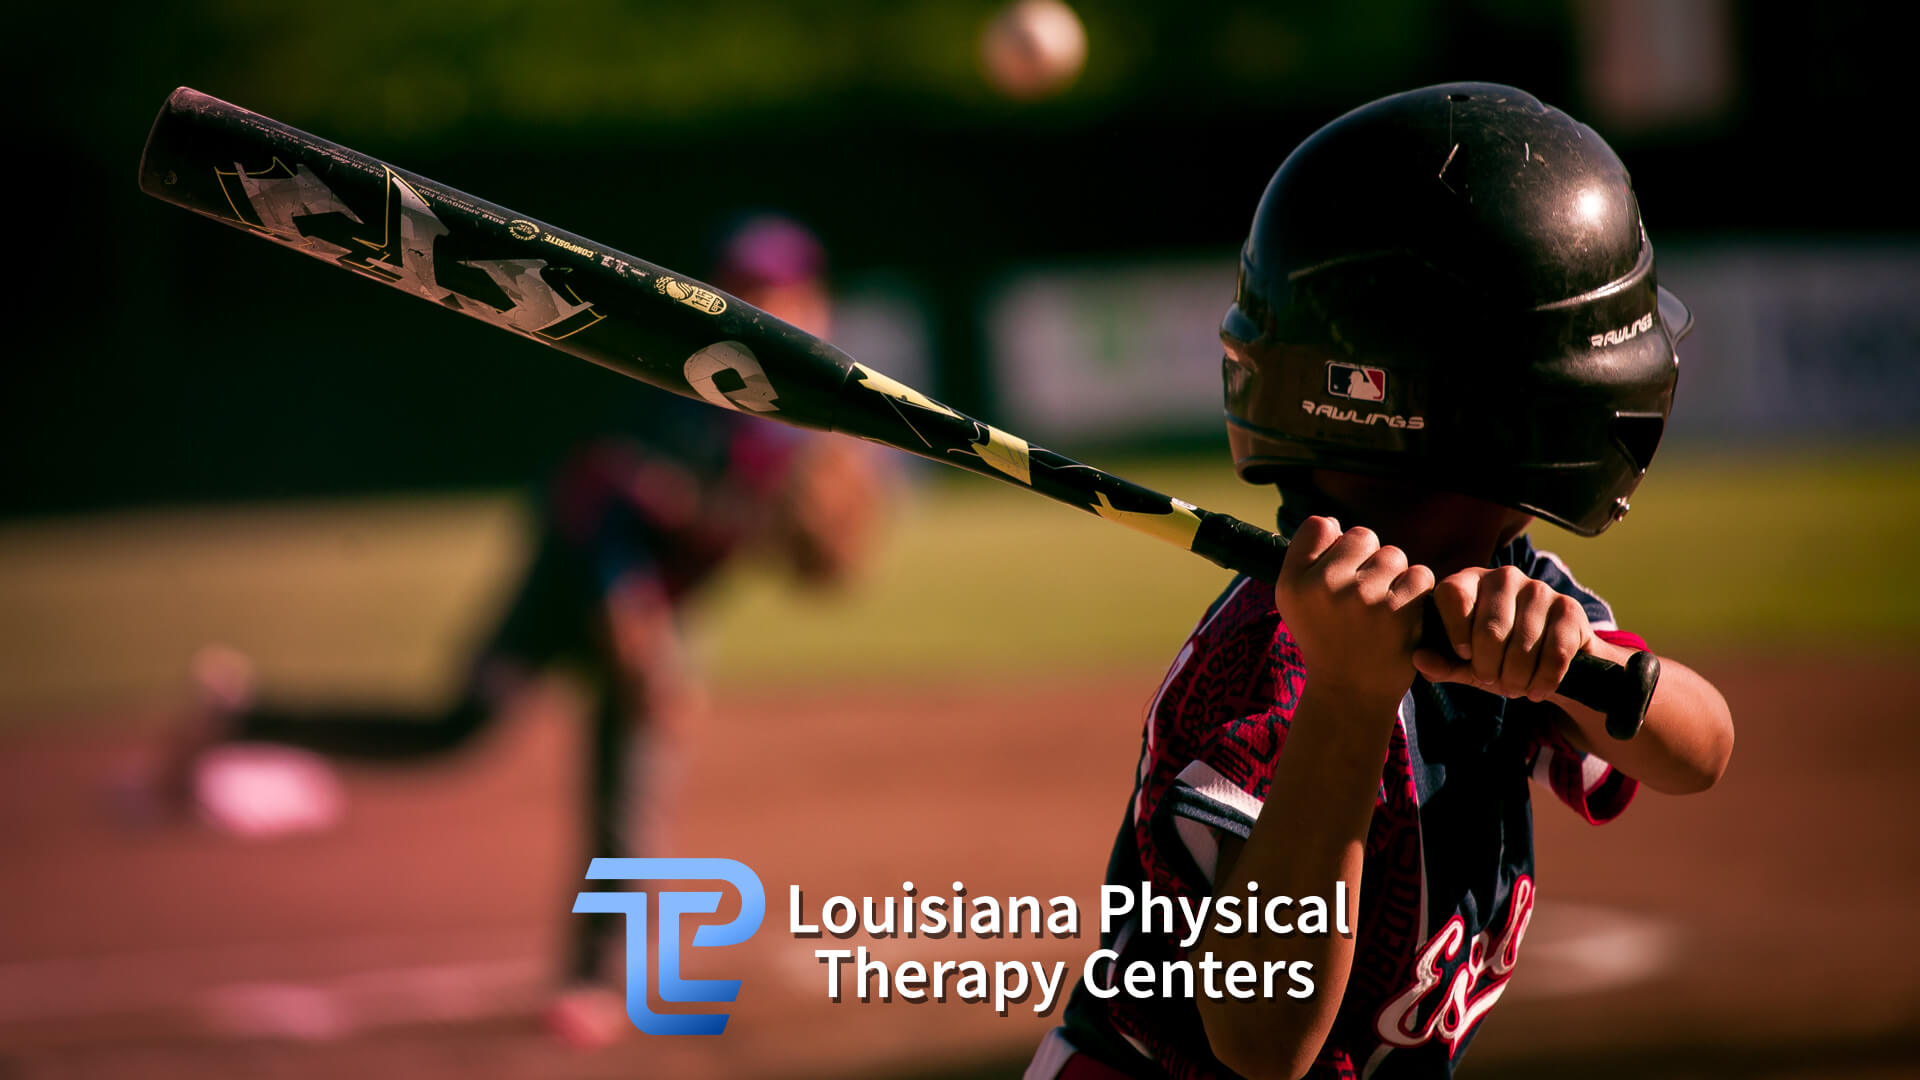 Youth Baseball Softball and T-ball - What Parents Need to Know